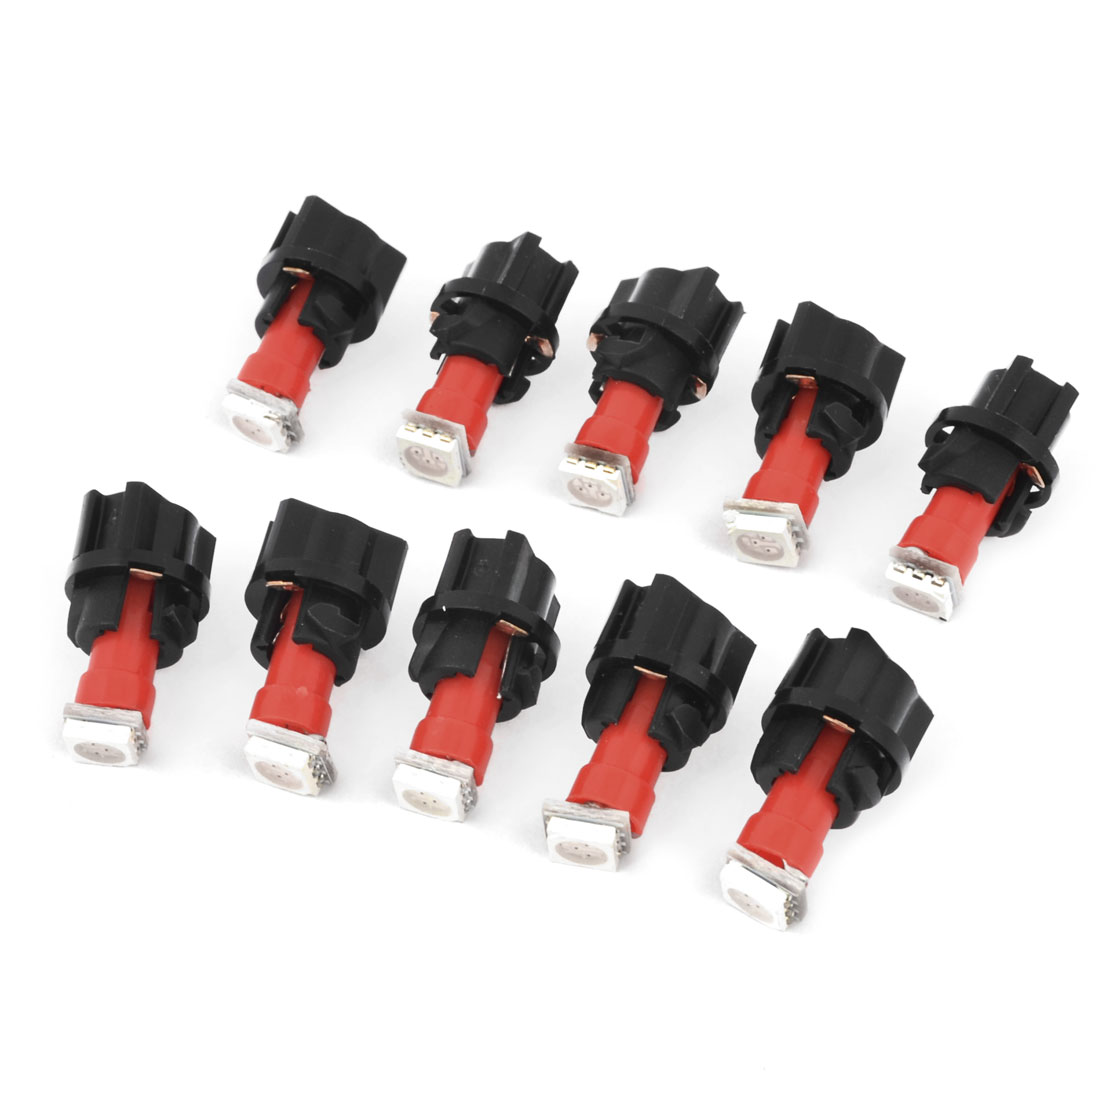 10Pcs DC 12V Car T5 5050 SMD LED Dashboard Light PC74 Socket Panel Red Internal